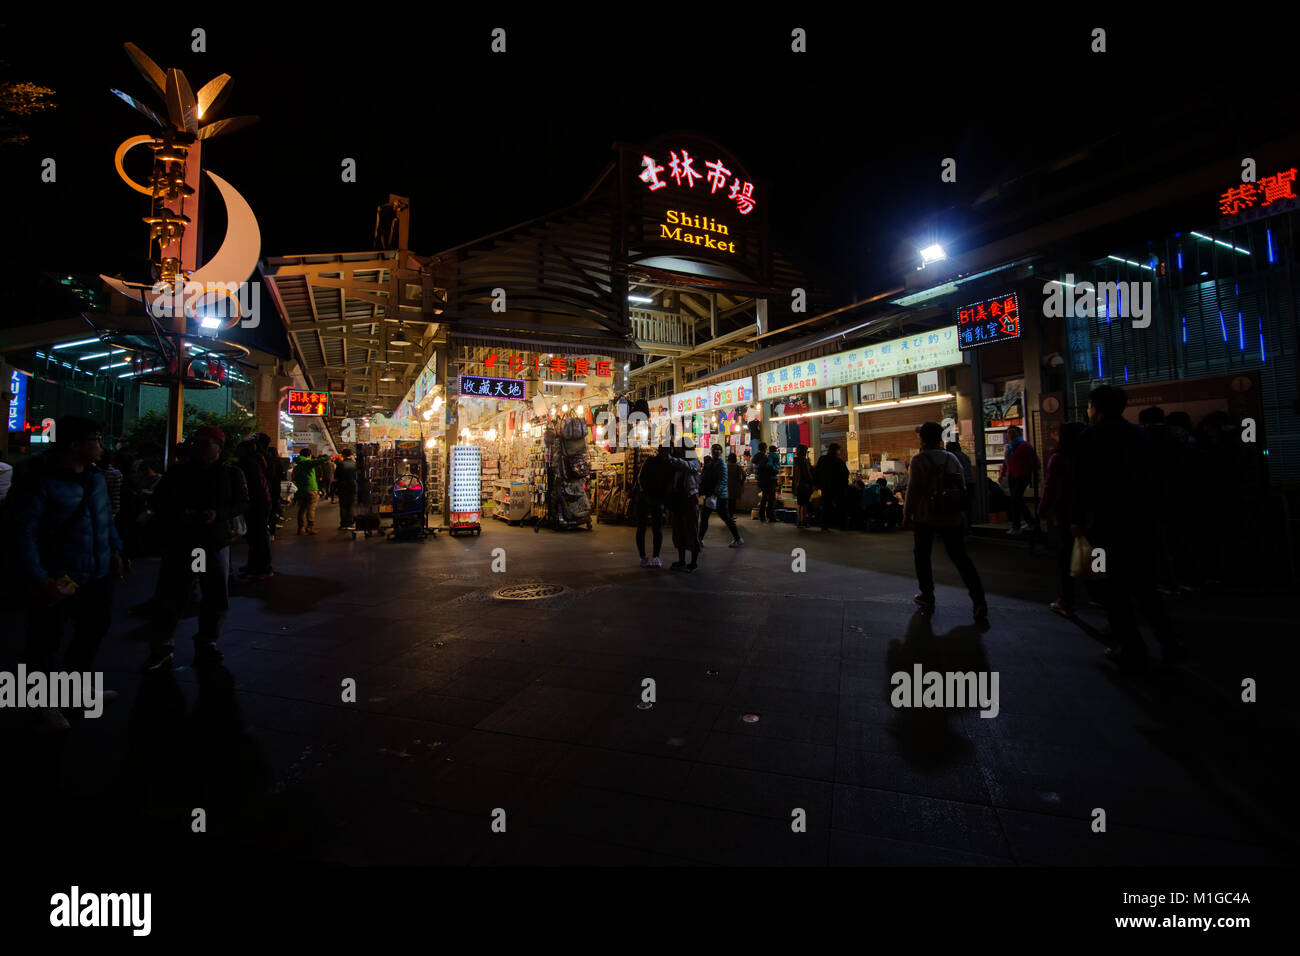 Feb. 6, 2017, Taipei: Taipei residents visit the Shilin Night Market in Taipei, one of the city's best known - Stock Image